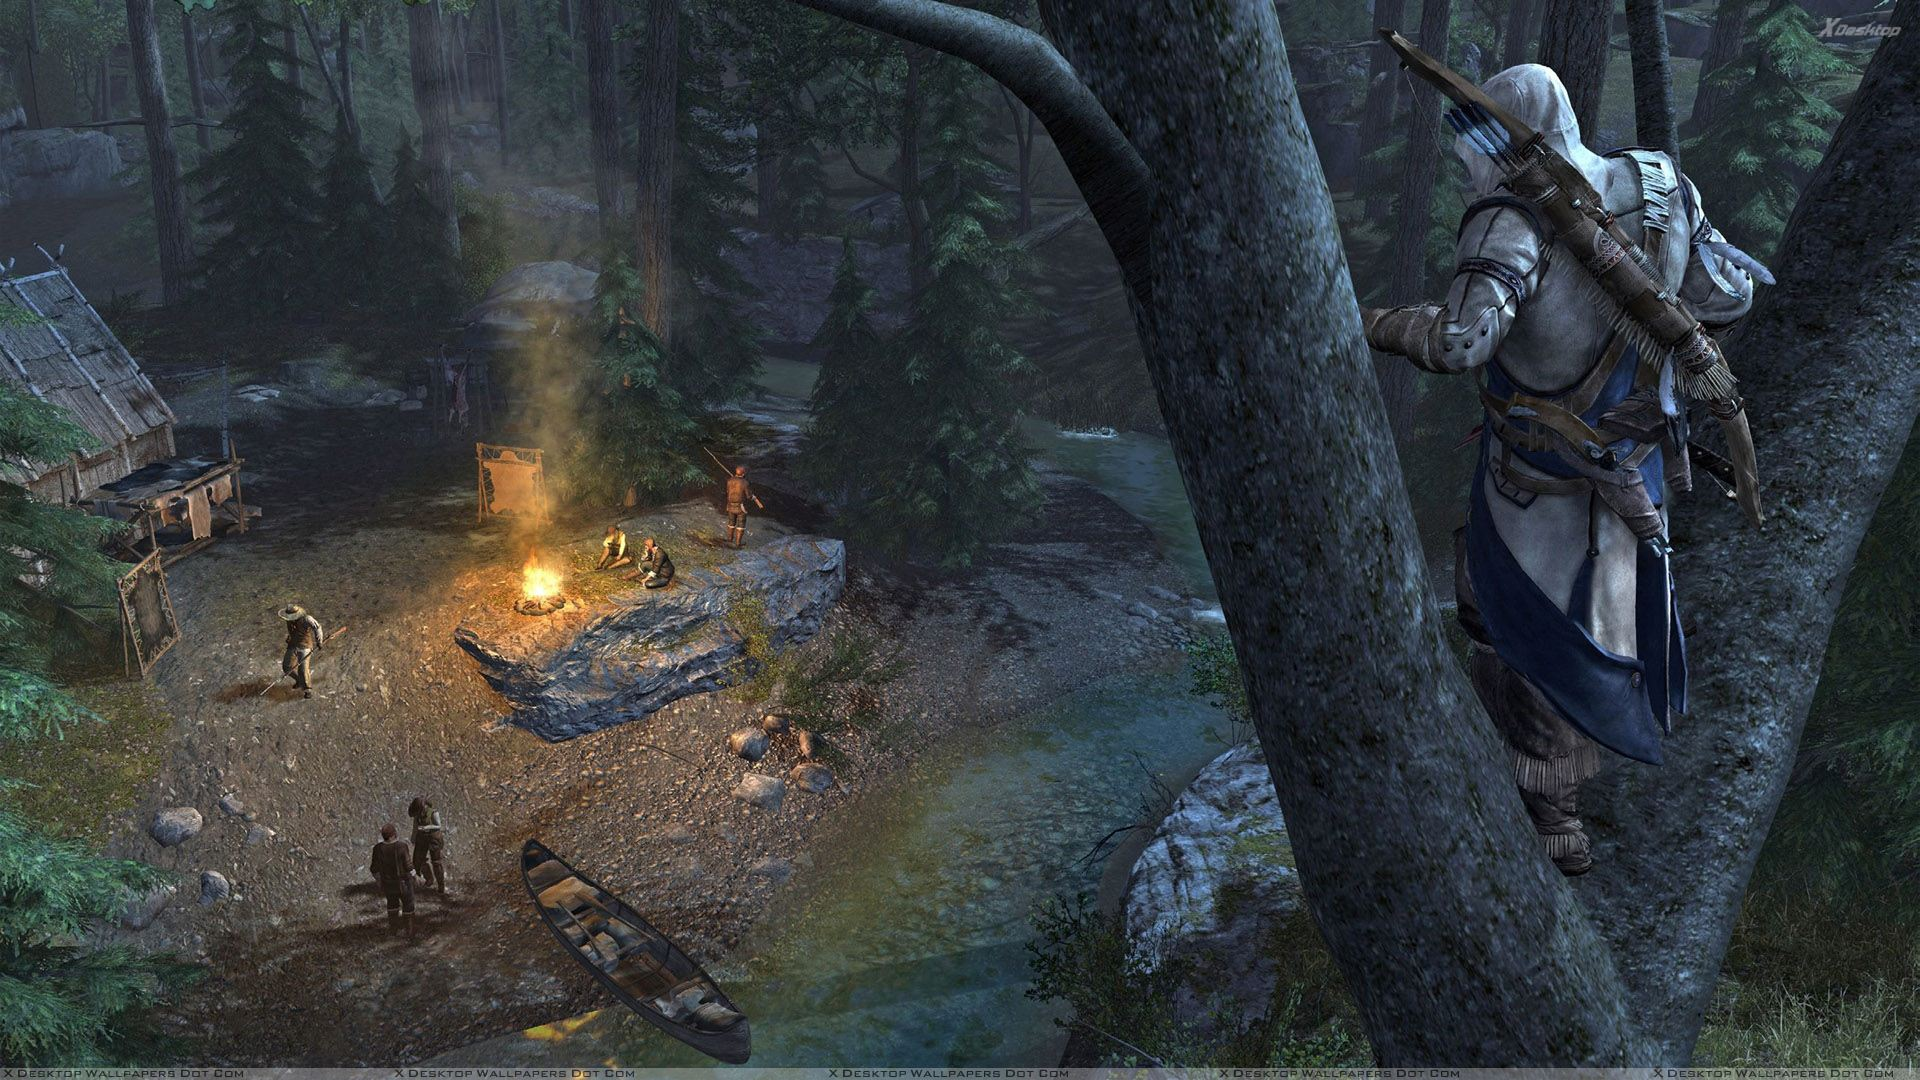 Assassins creed 3 standing on a tree wallpaper you are viewing wallpaper titled assassins creed 3 voltagebd Gallery